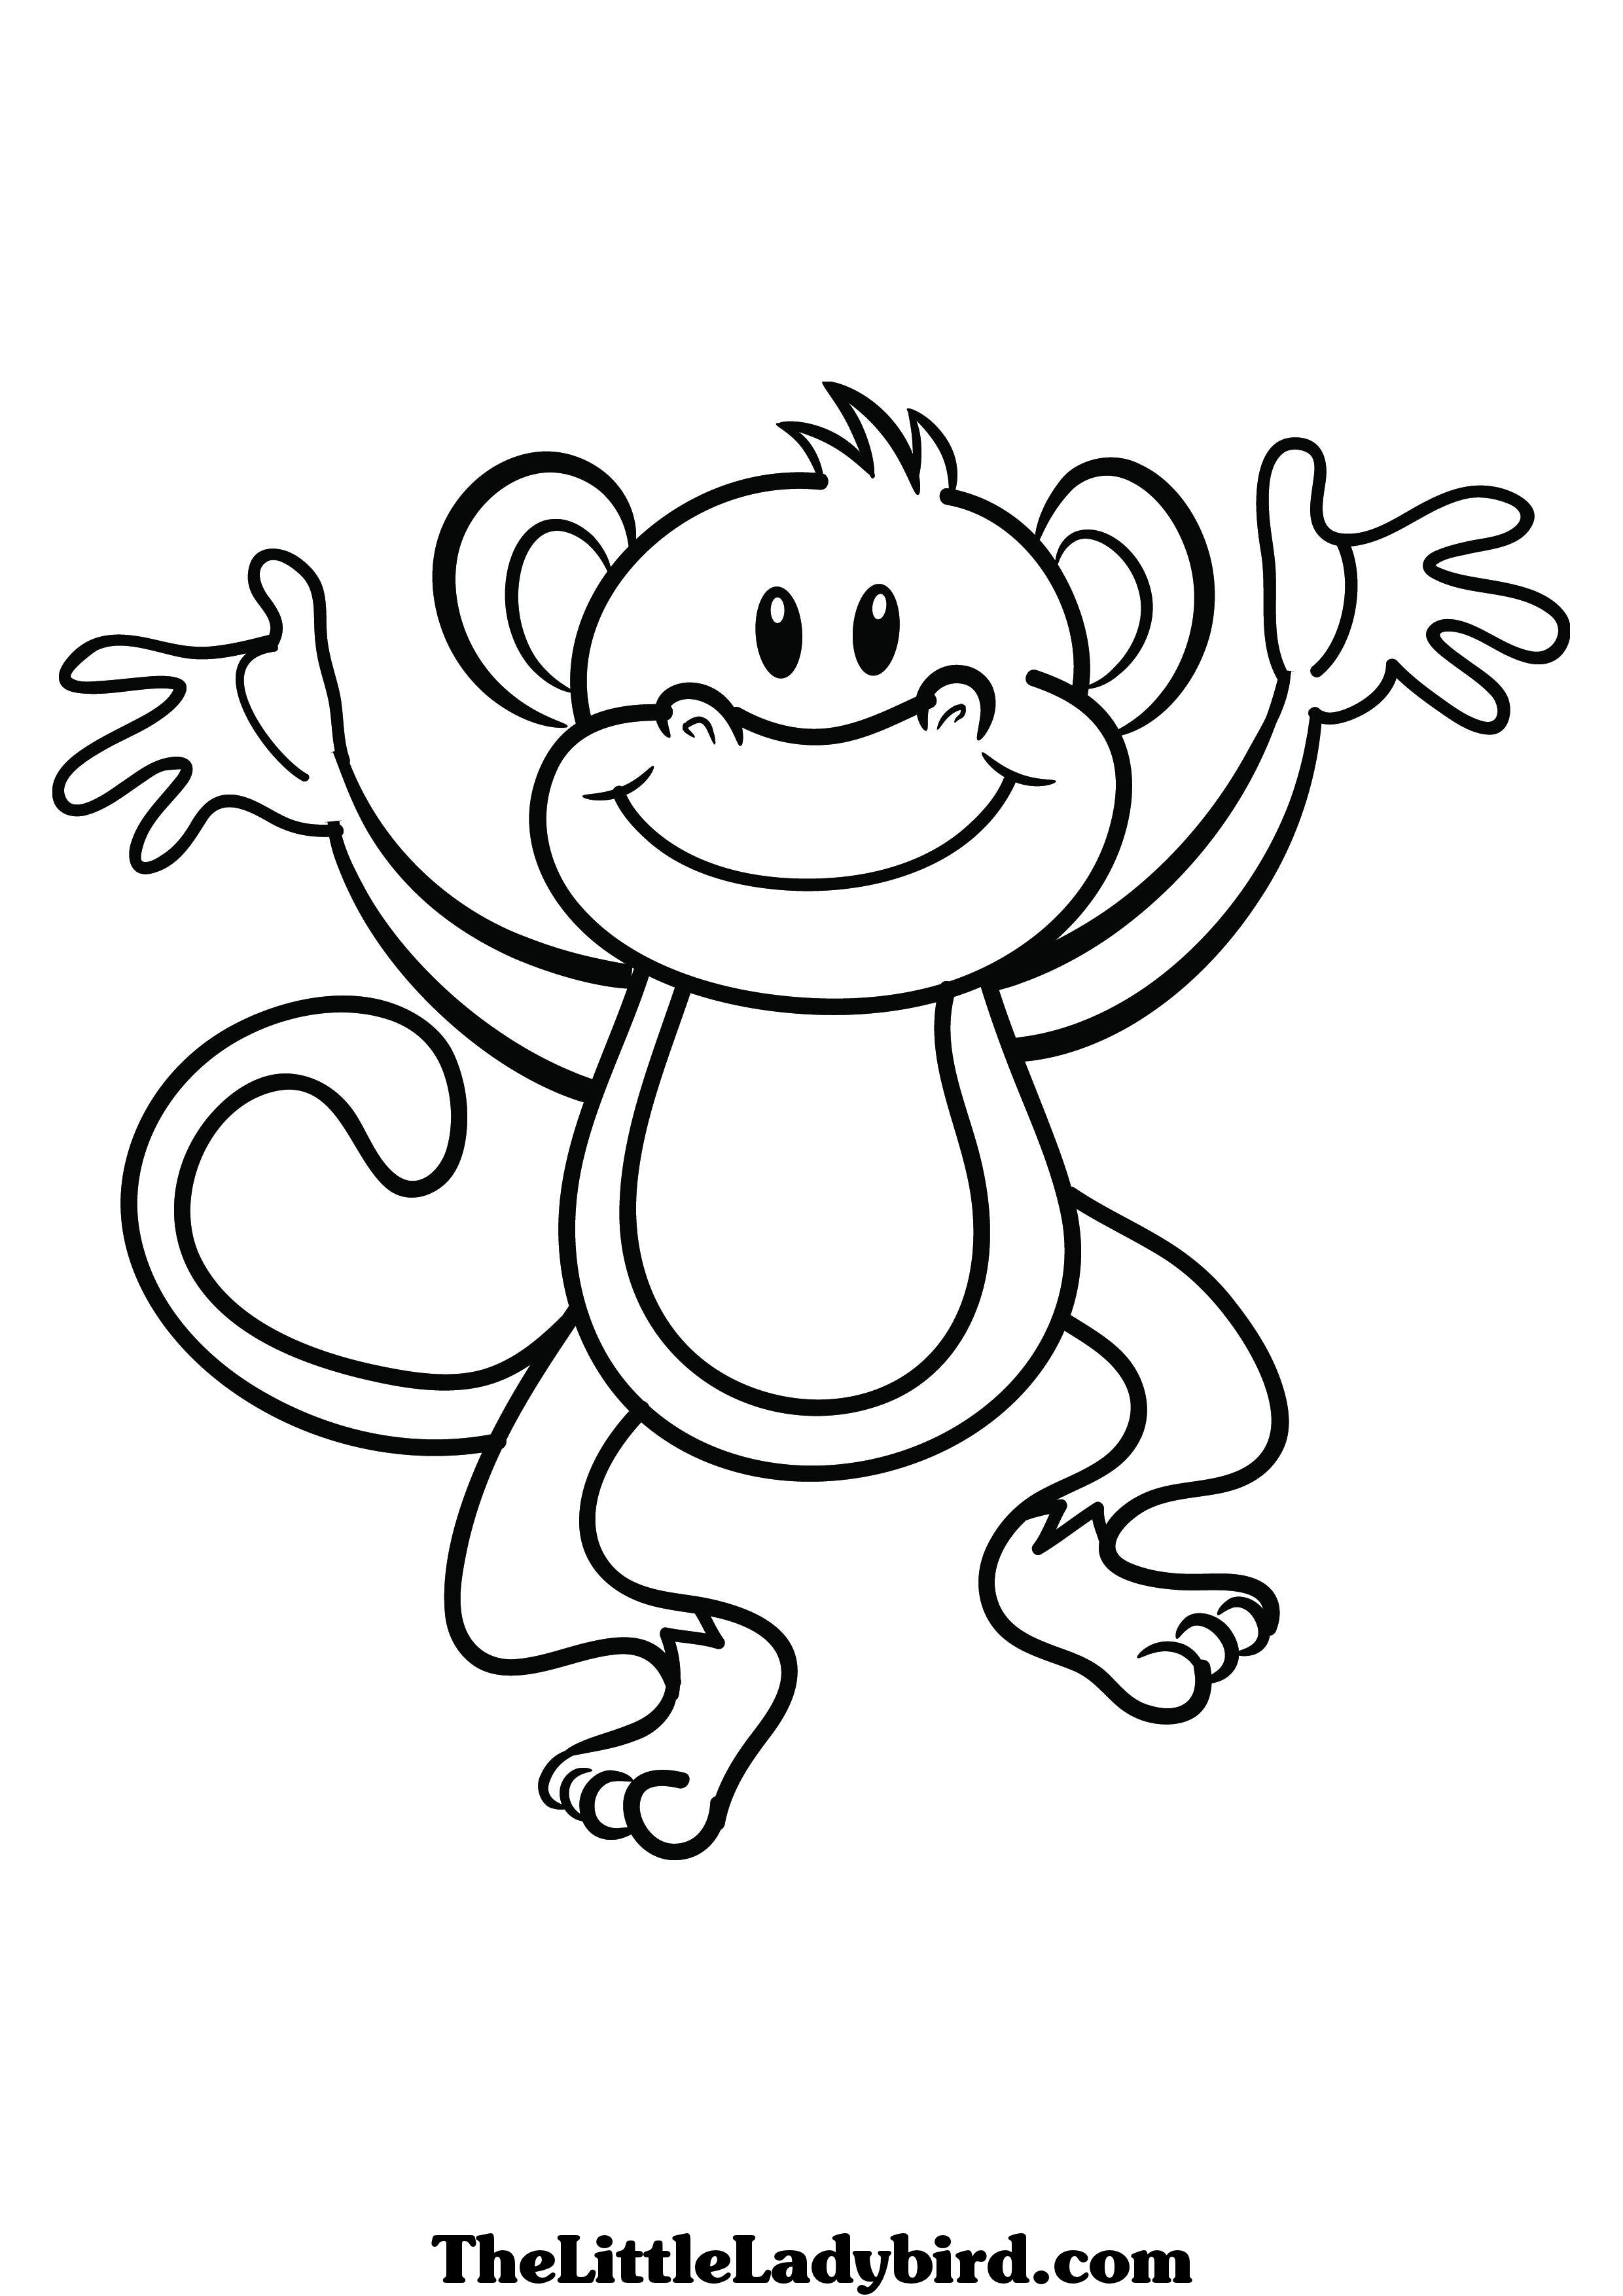 2480x3508 Monkey Coloring Pages Girls Printable Coloring Pages